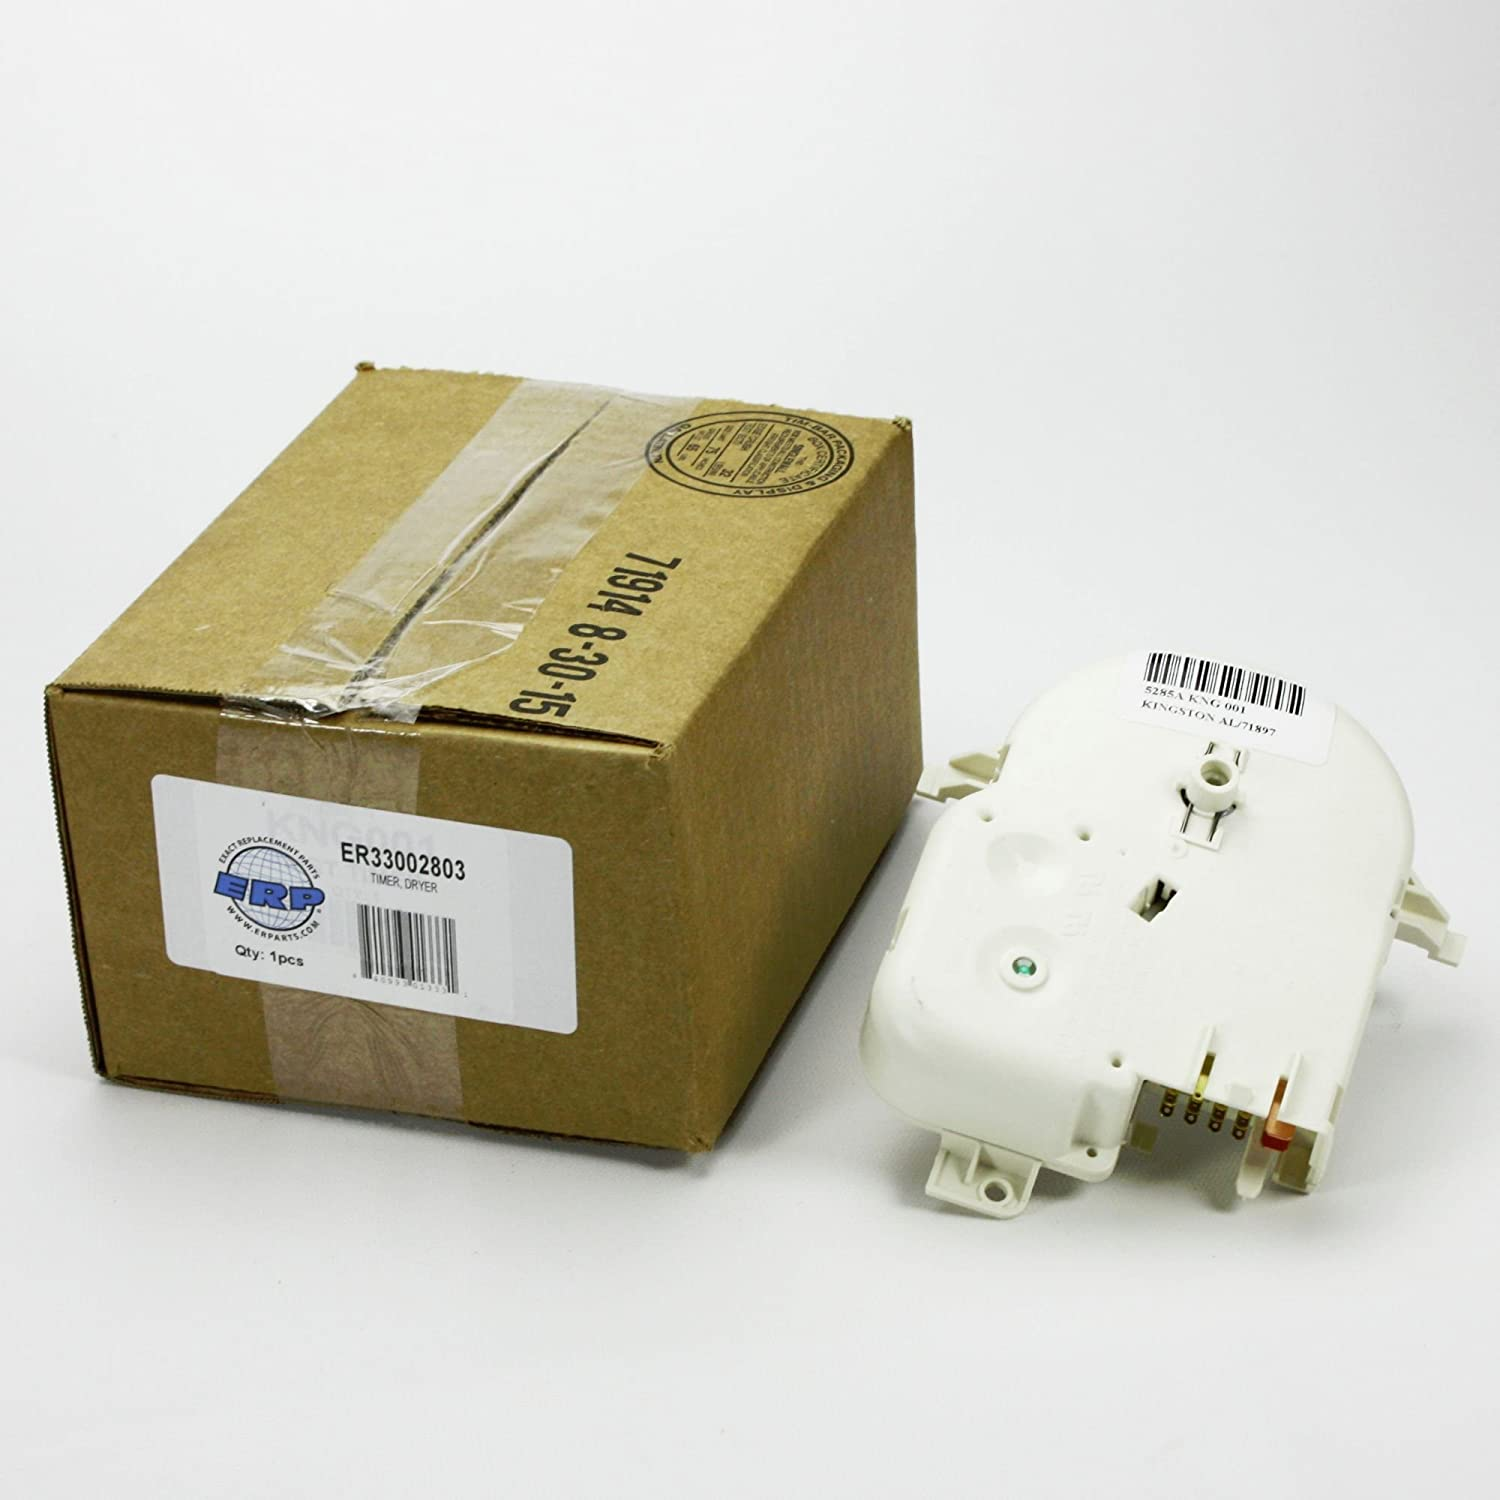 Er33002803 For Mde7400 33002803 Kingston Timer Control Parts Maytag Mde7400ayw Wiring Information From Fits Amana Dryers Appliances